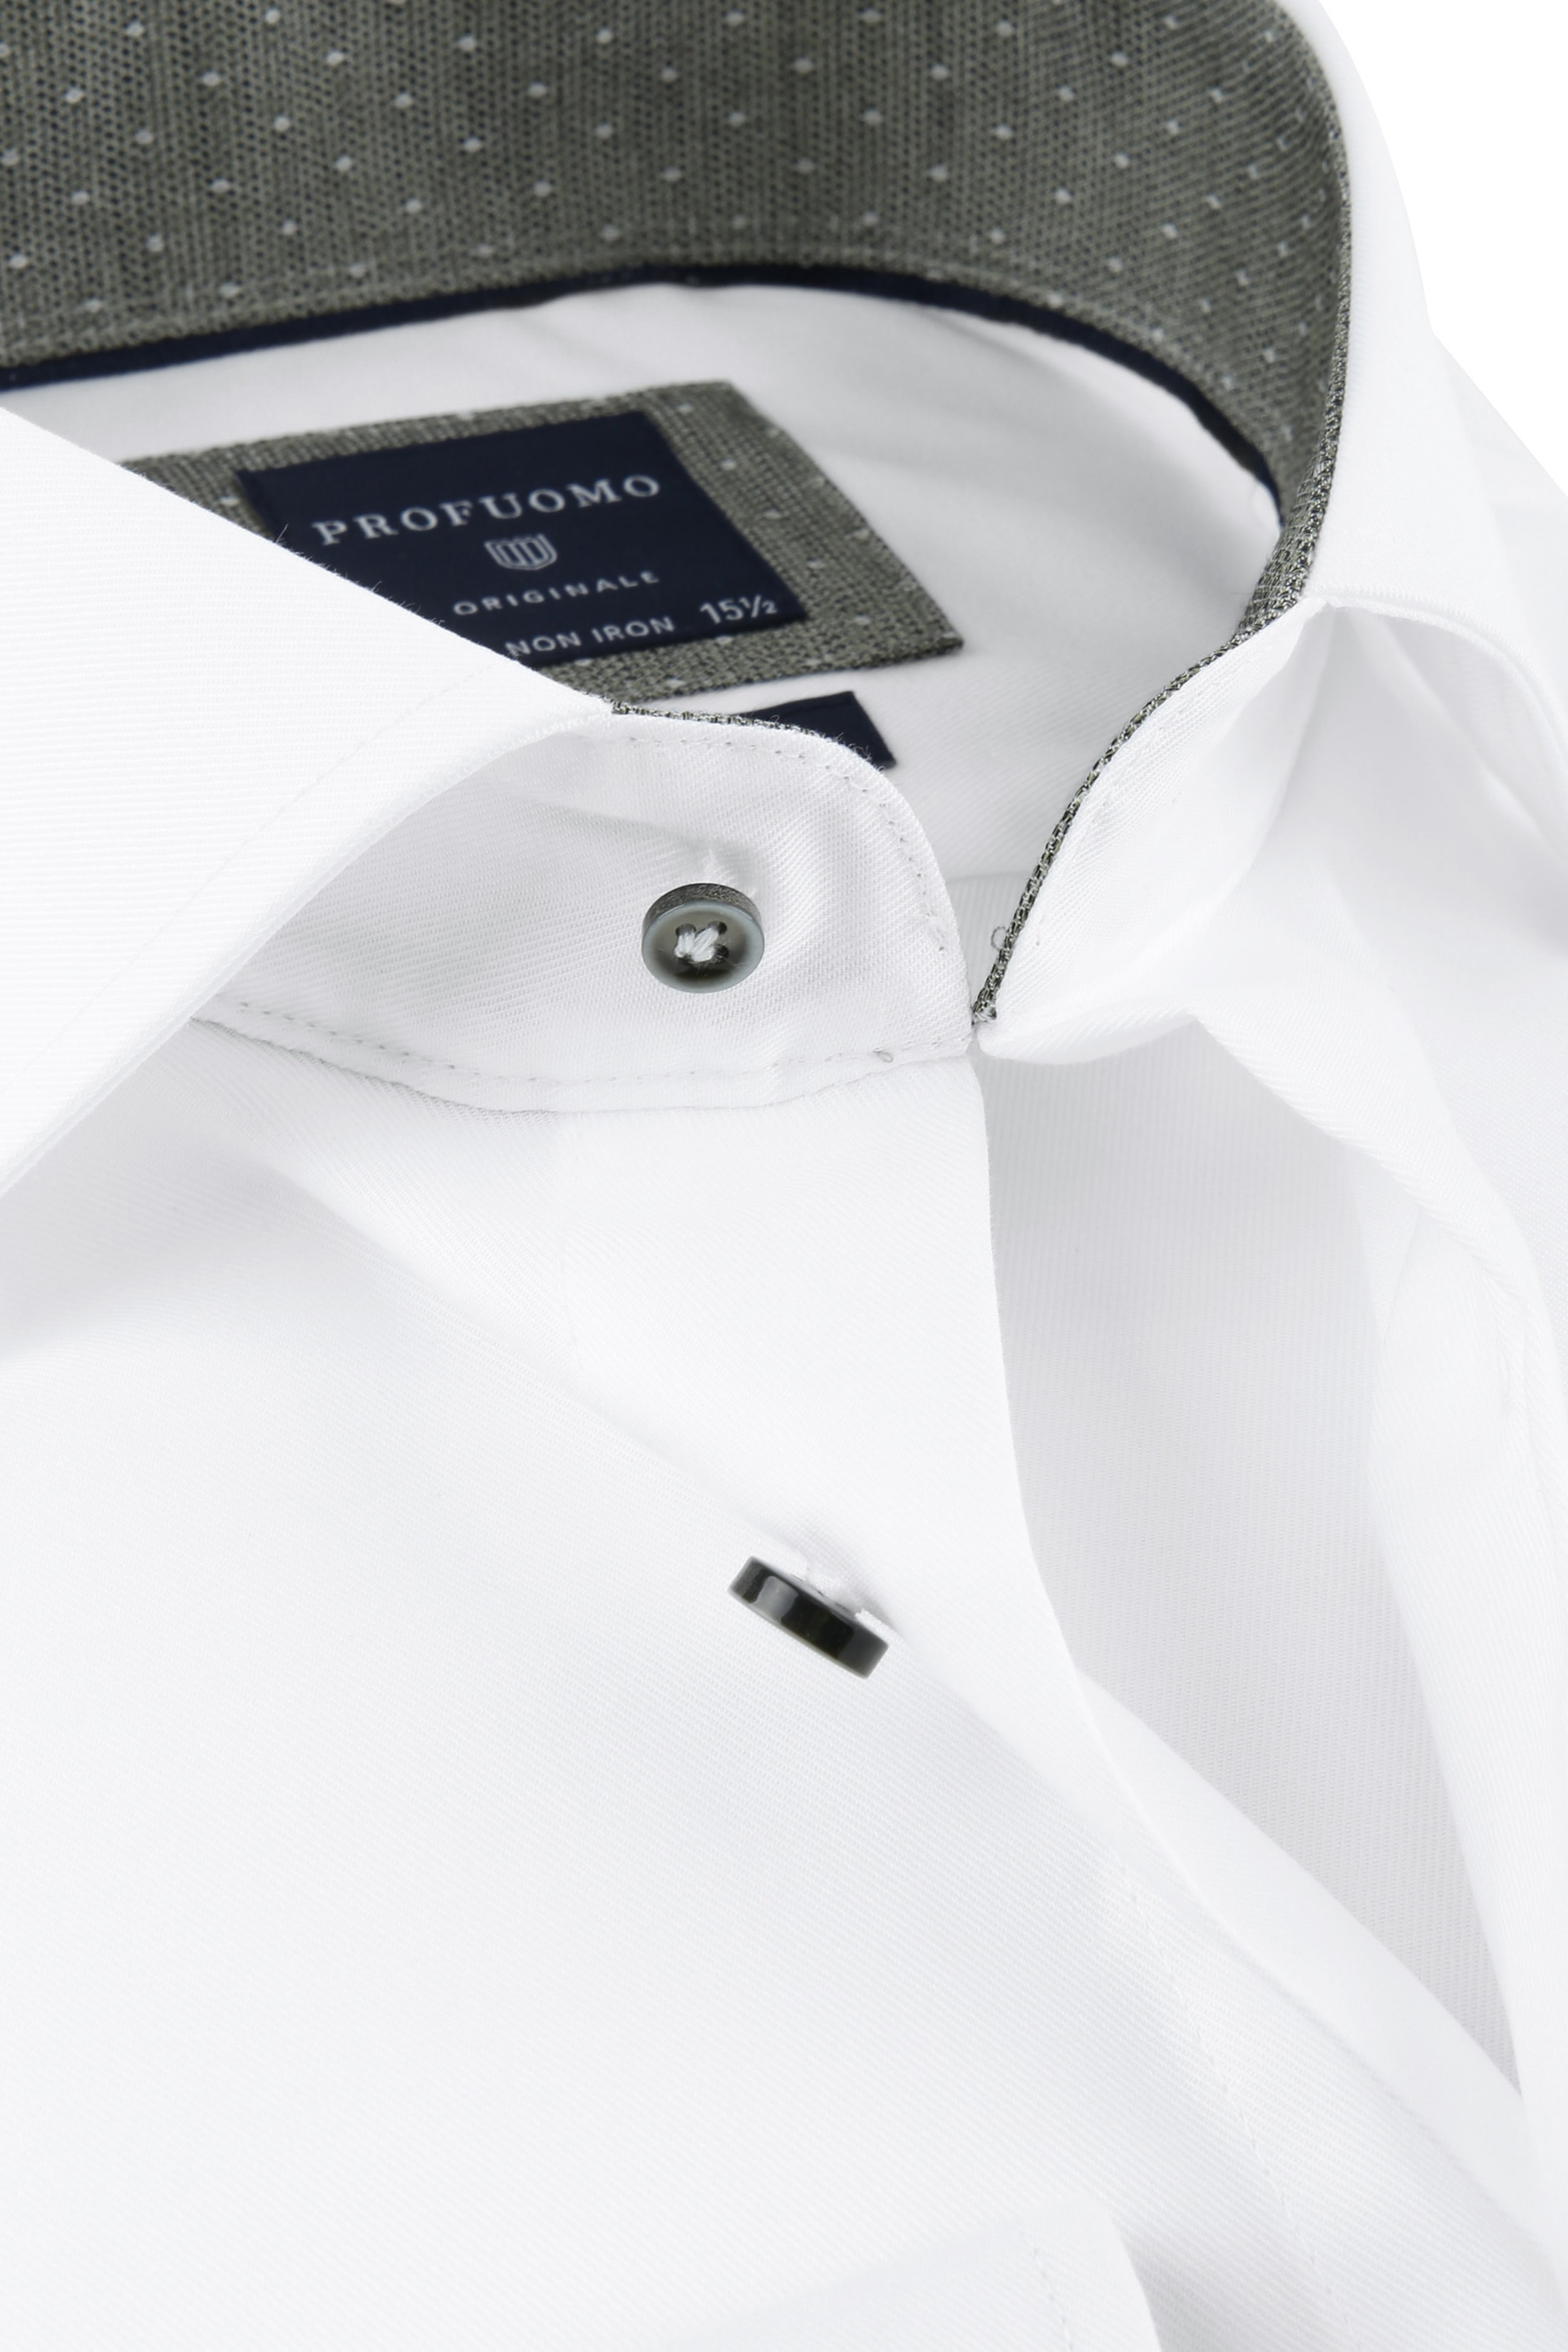 Profuomo Shirt SF Wit Cutaway photo 1